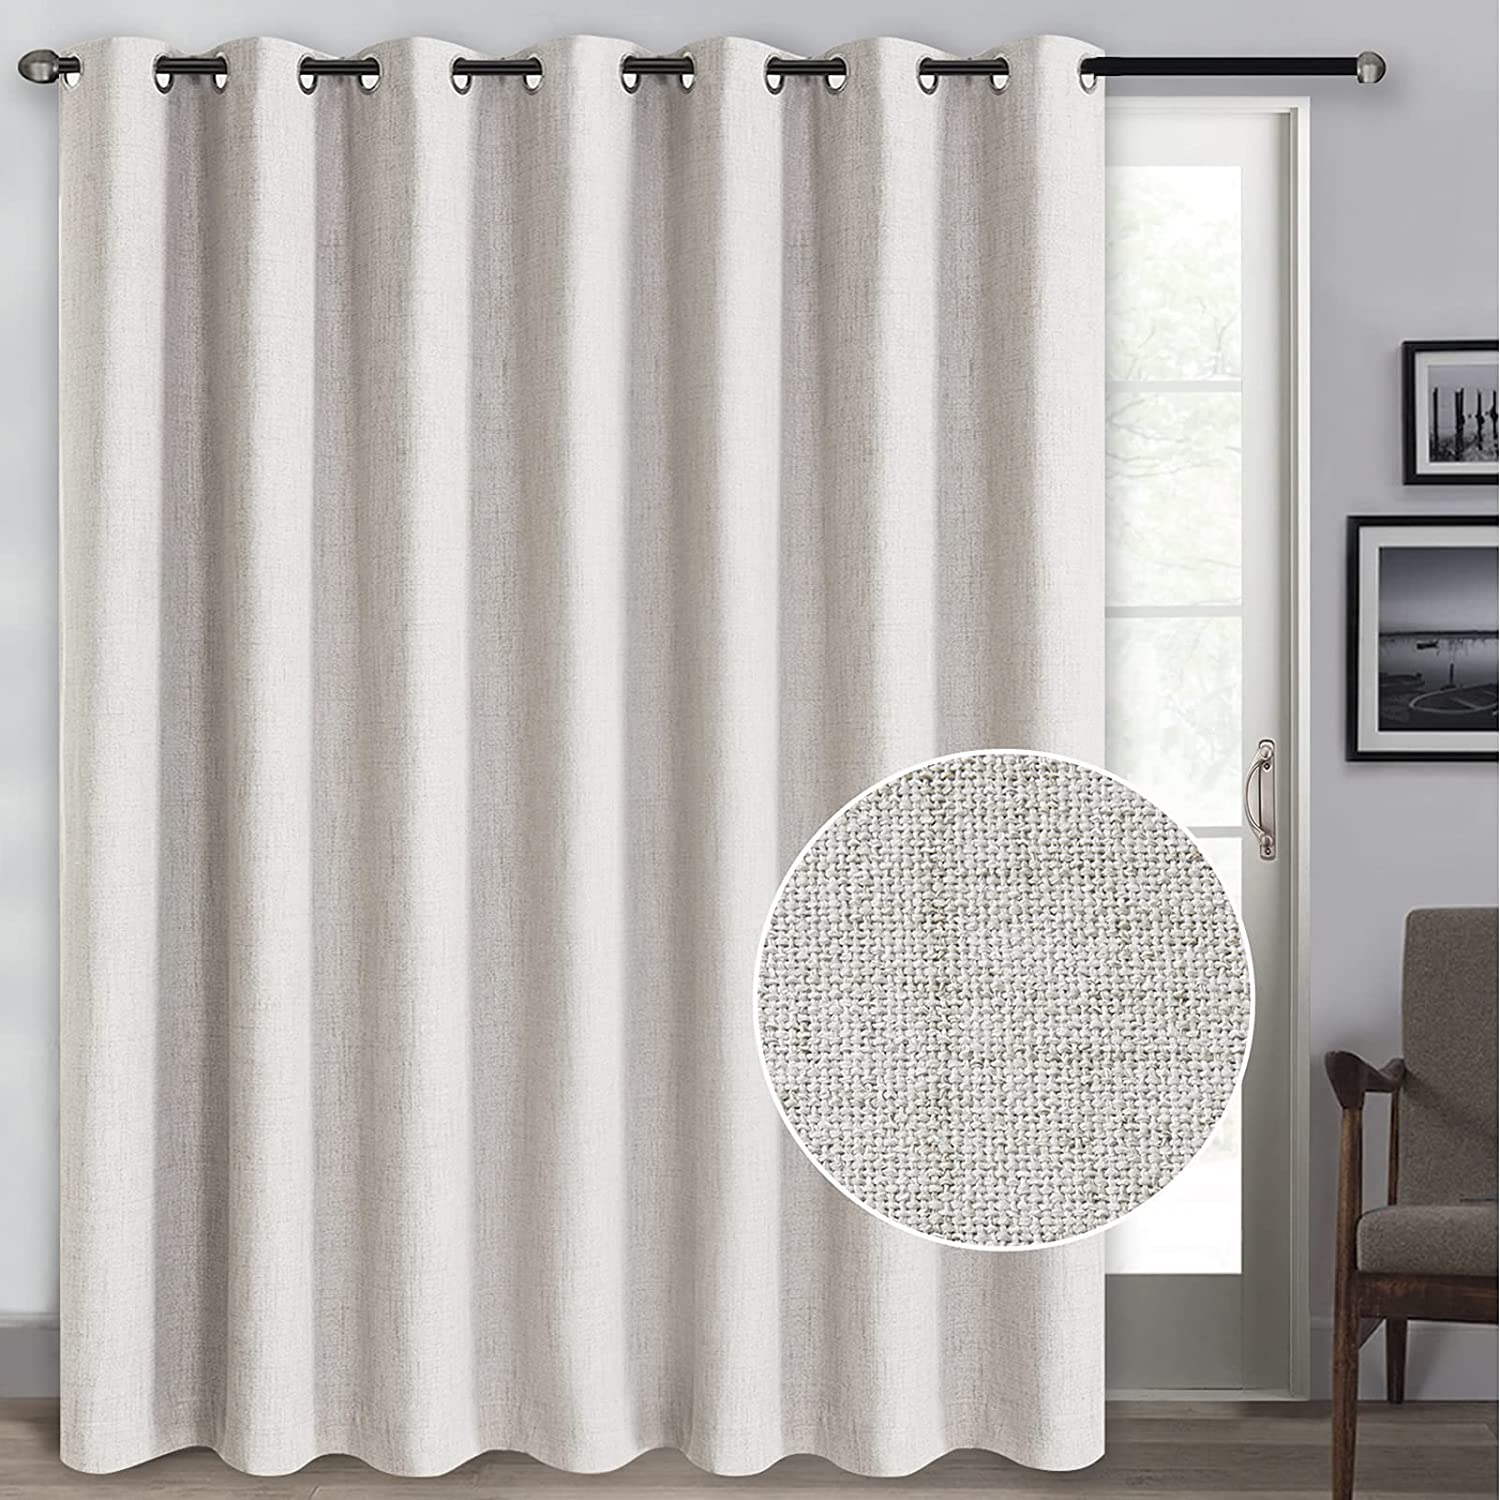 Rose Home Fashion 100% Blackout Curtains, Sliding Door Curtains for Living Room Linen Textured Patio Door Curtains Drapes Extra Wide Grommet Curtain Panel-1 Panel (100x84 Beige)